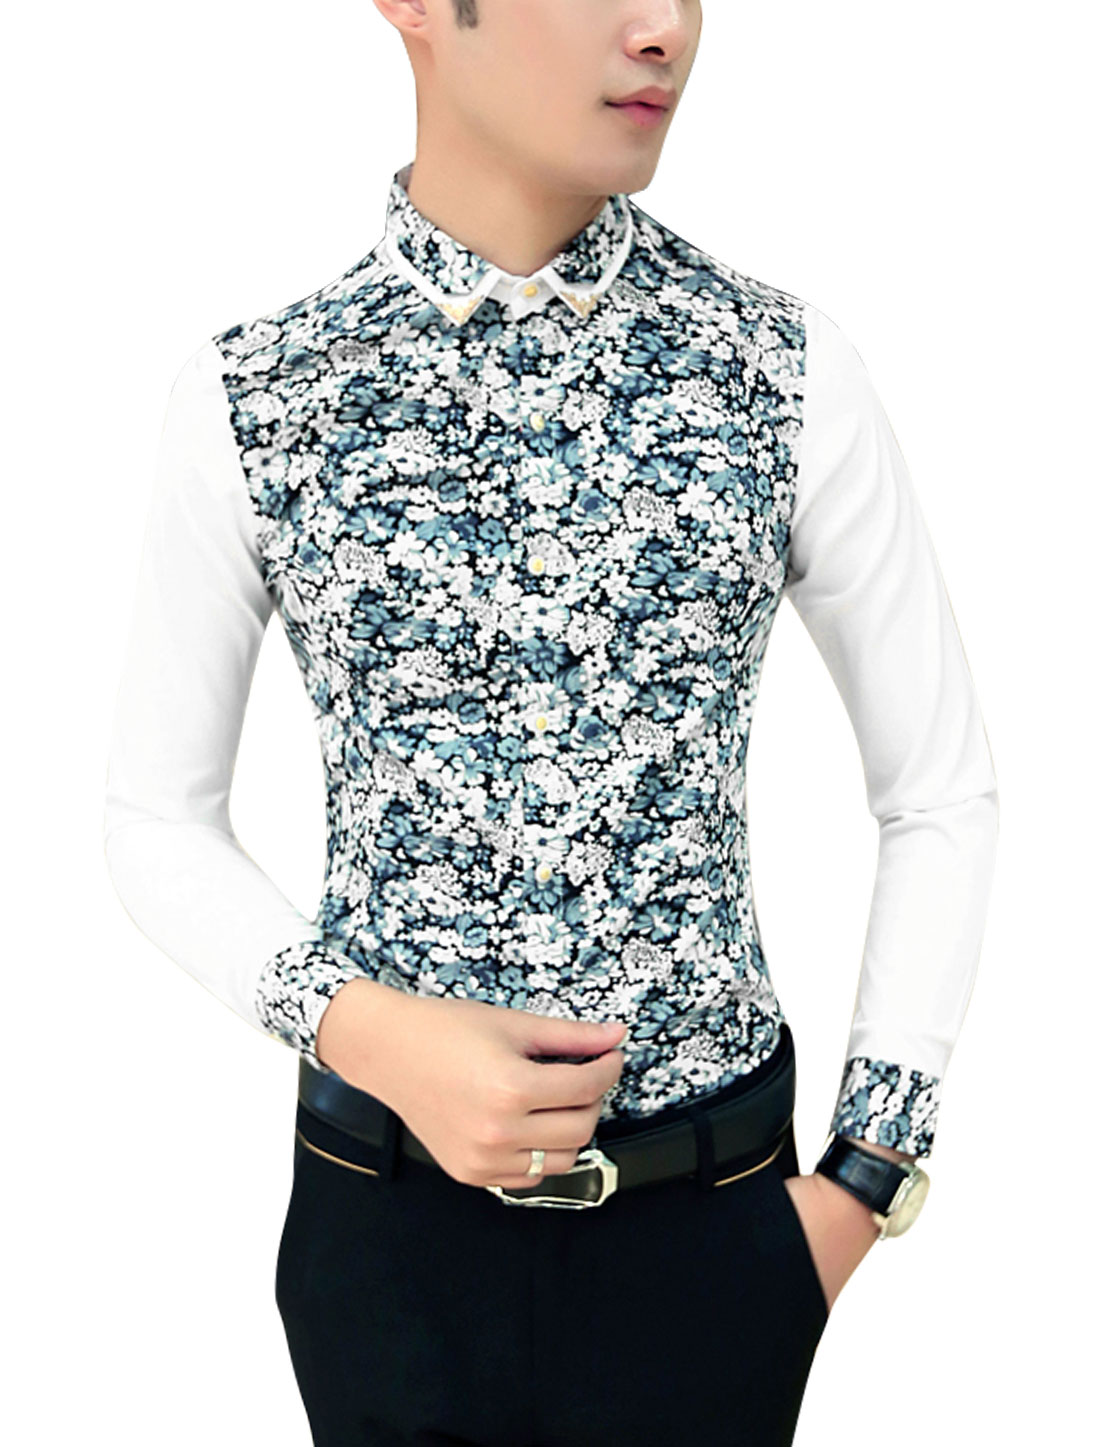 Men Layered Point Collar Contrast Floral Print Slim Cut Shirt Steel Blue Beige M